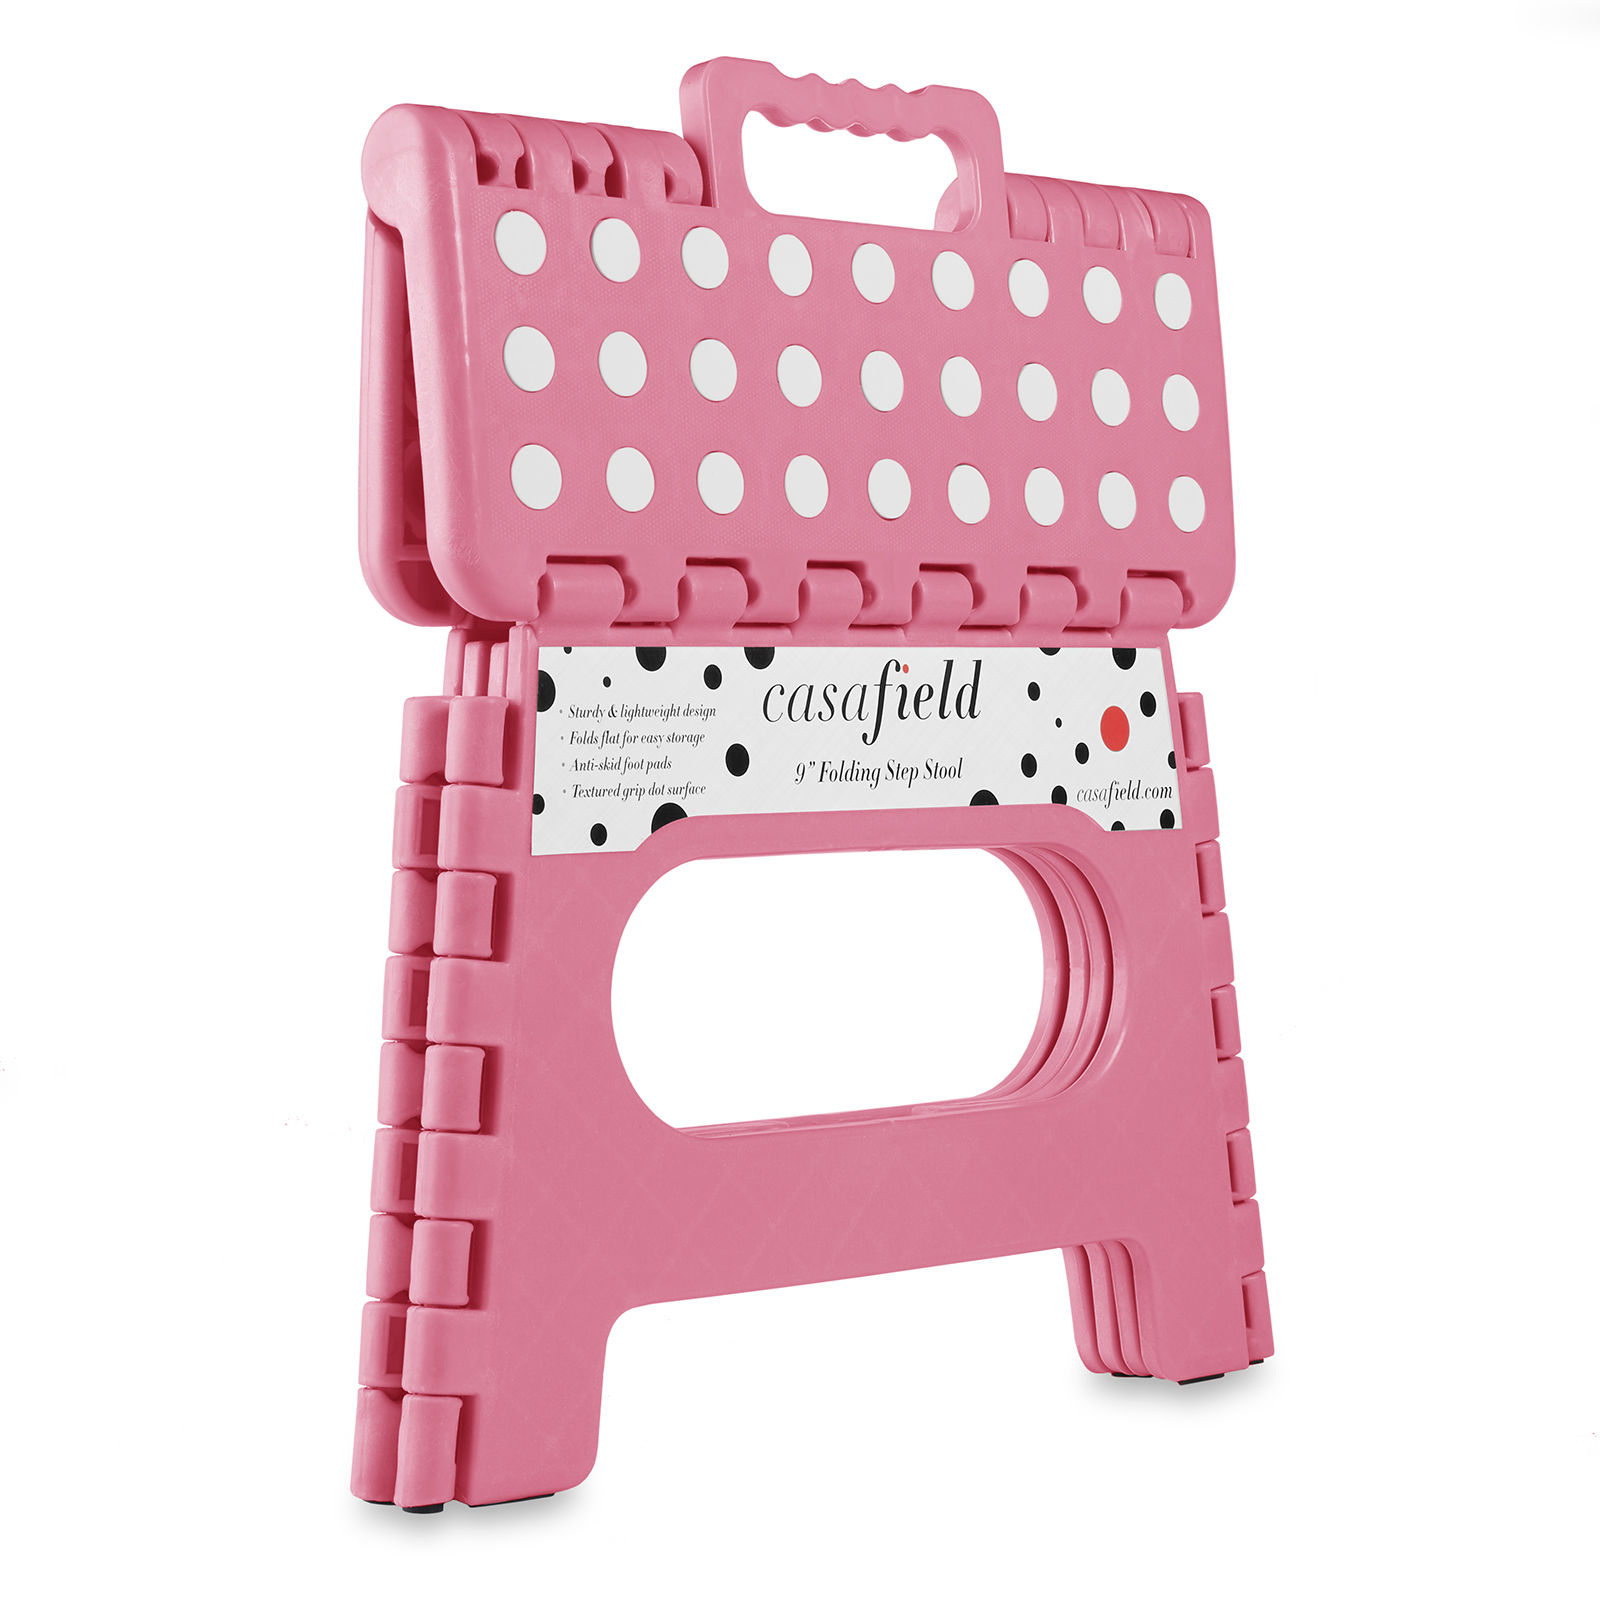 9 Collapsible Folding Plastic Kitchen Step Foot Stool W Handle Adults Kids Ebay